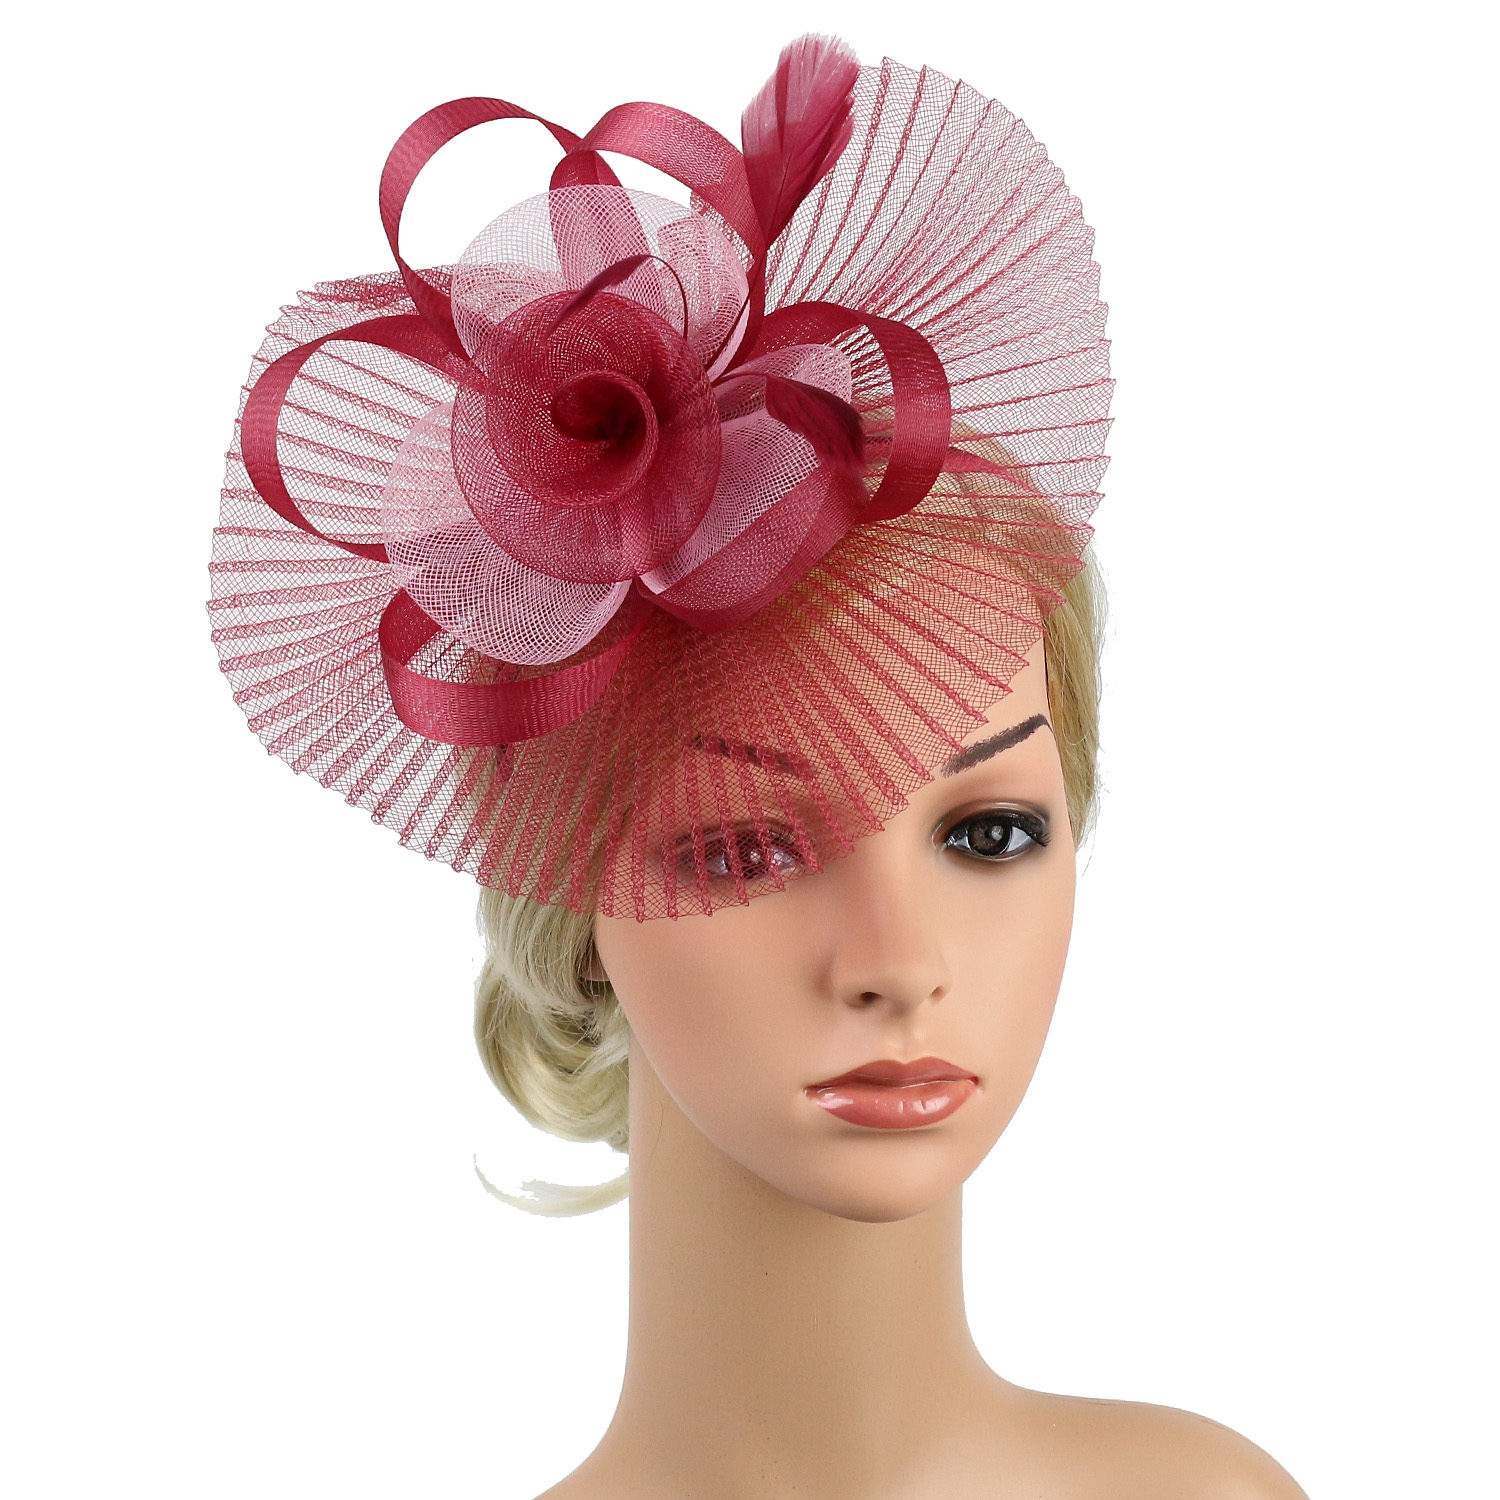 Races Ladies Day Pink flower feather fascinator headband for Ascot Weddings